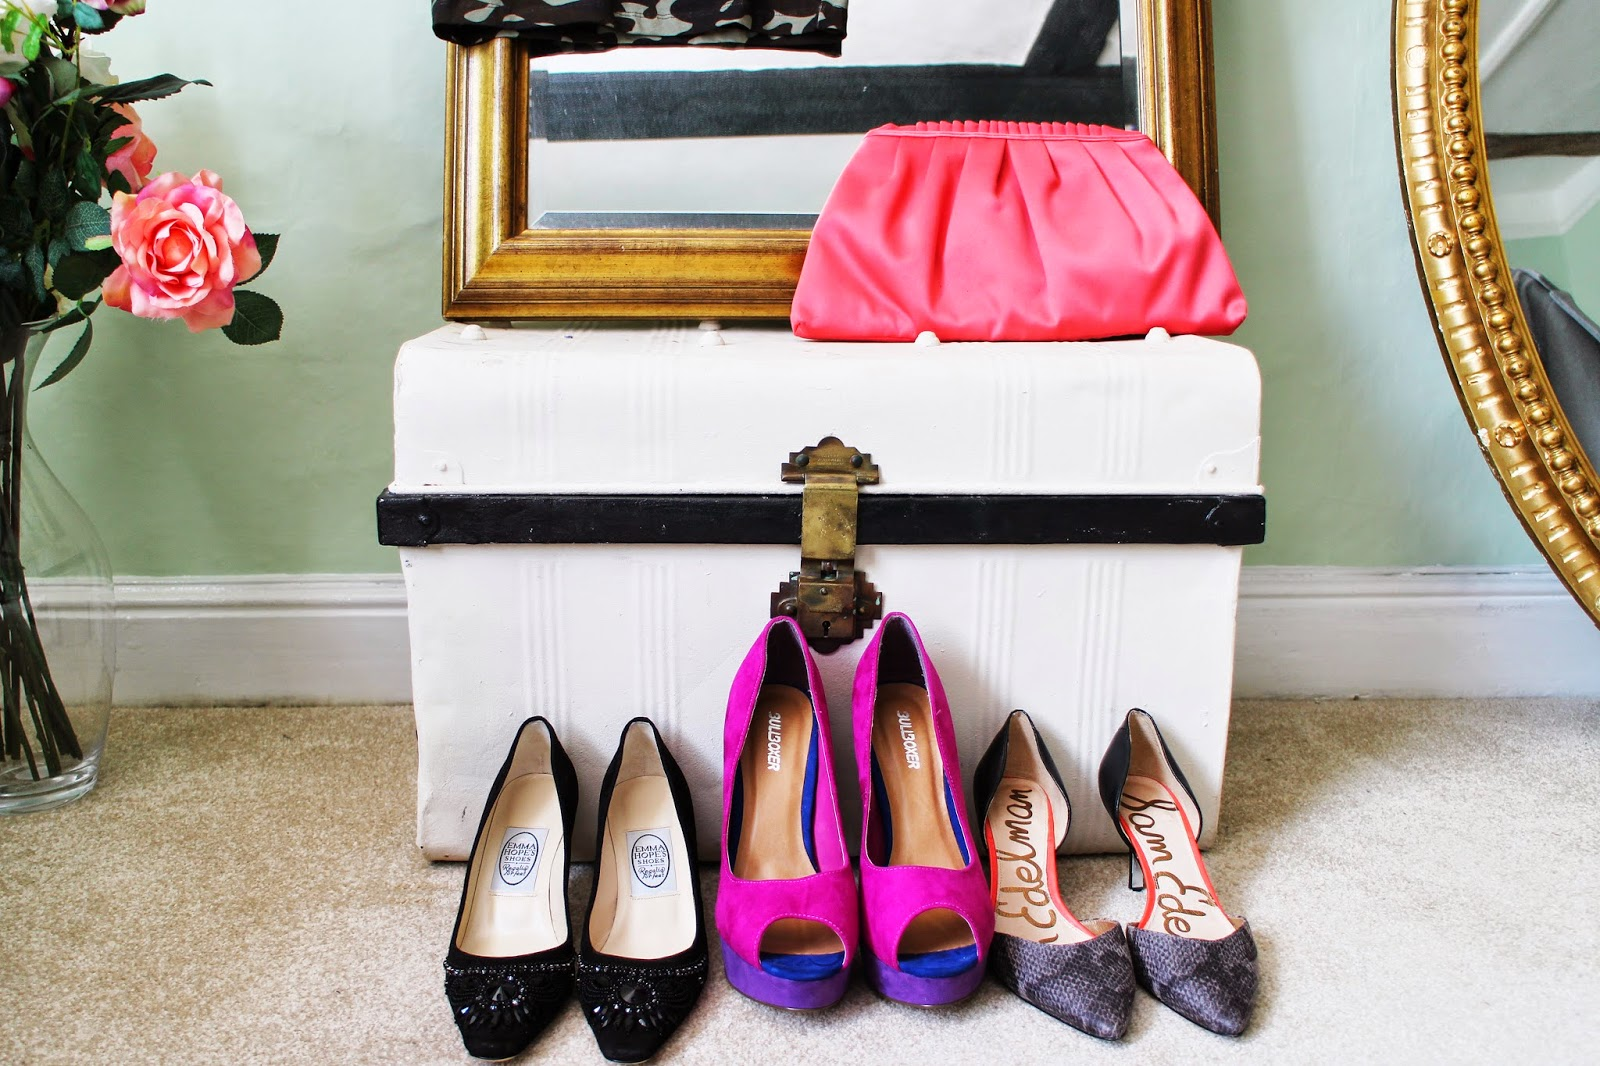 Wardrobe Clearout! How To Host A Successful Sale